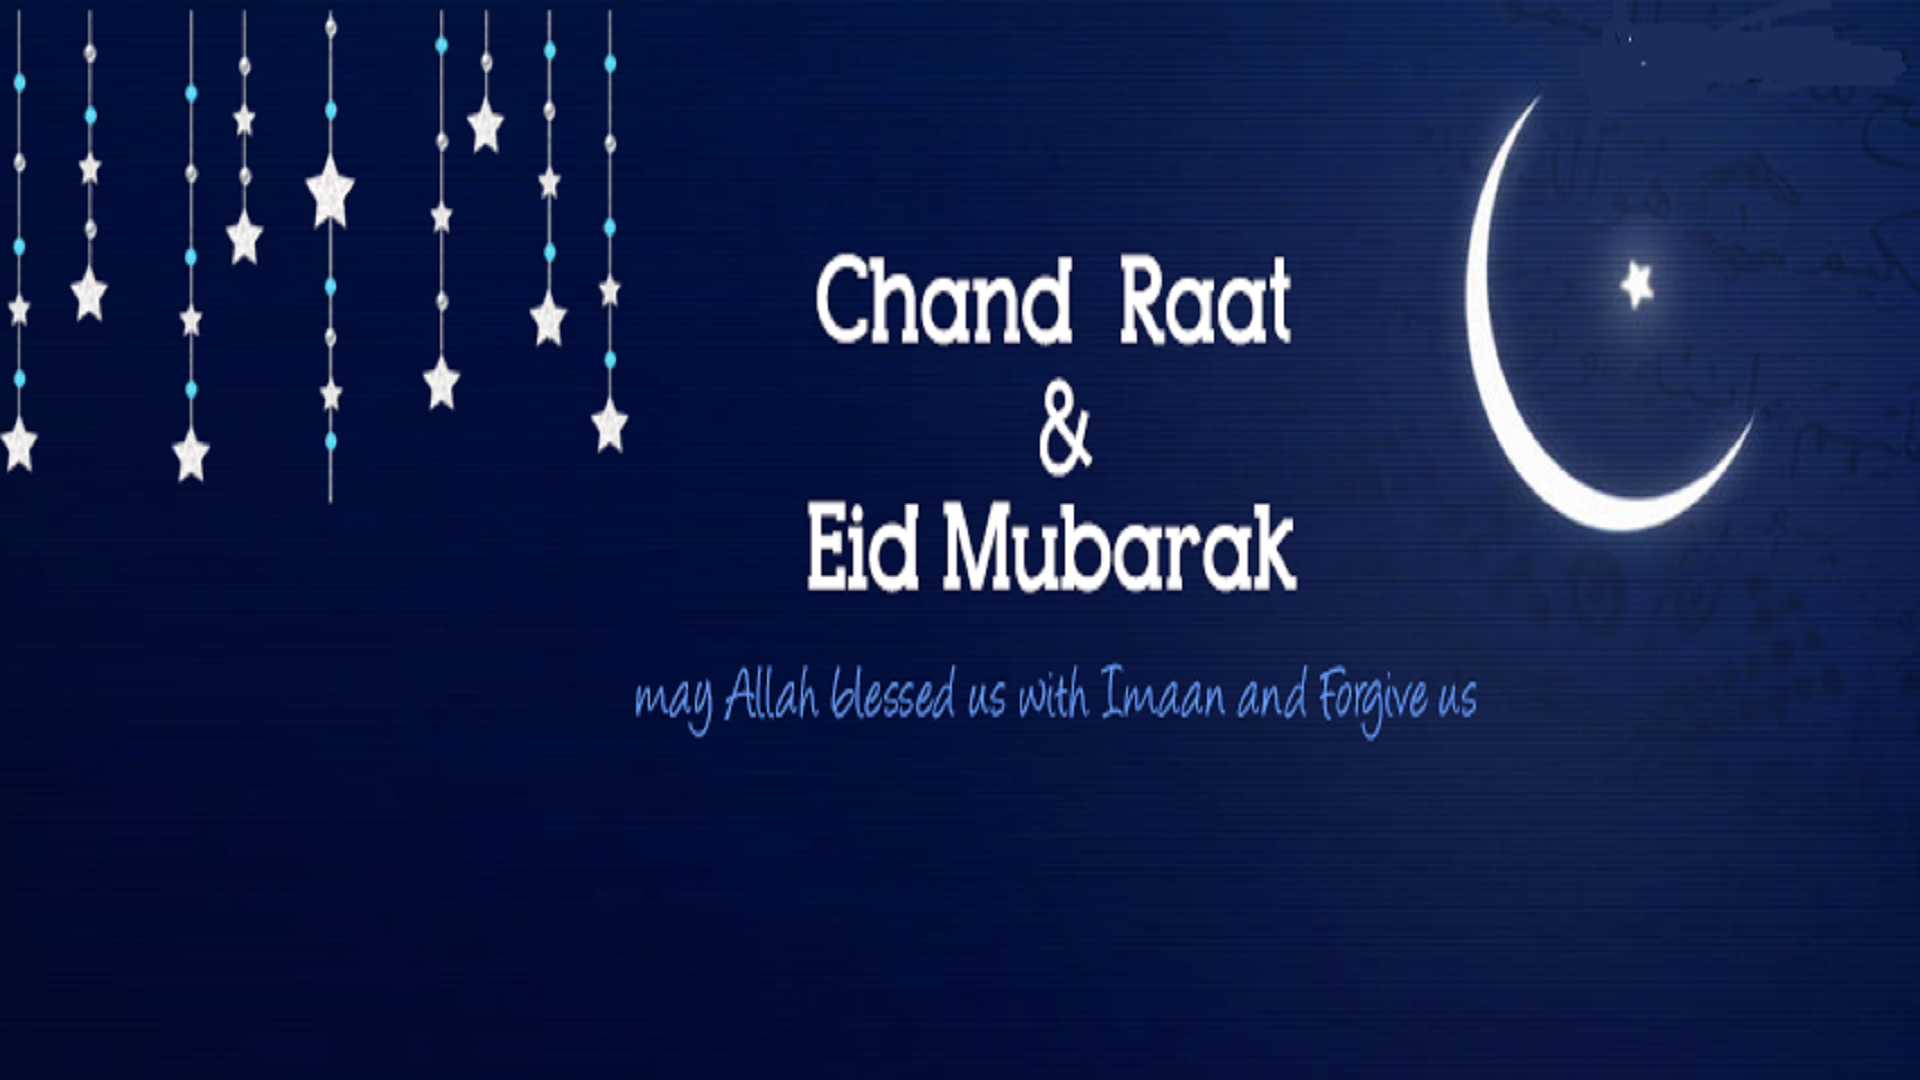 chand-raat-mubarak-Eid-mubarak-free-hd-wallpapers